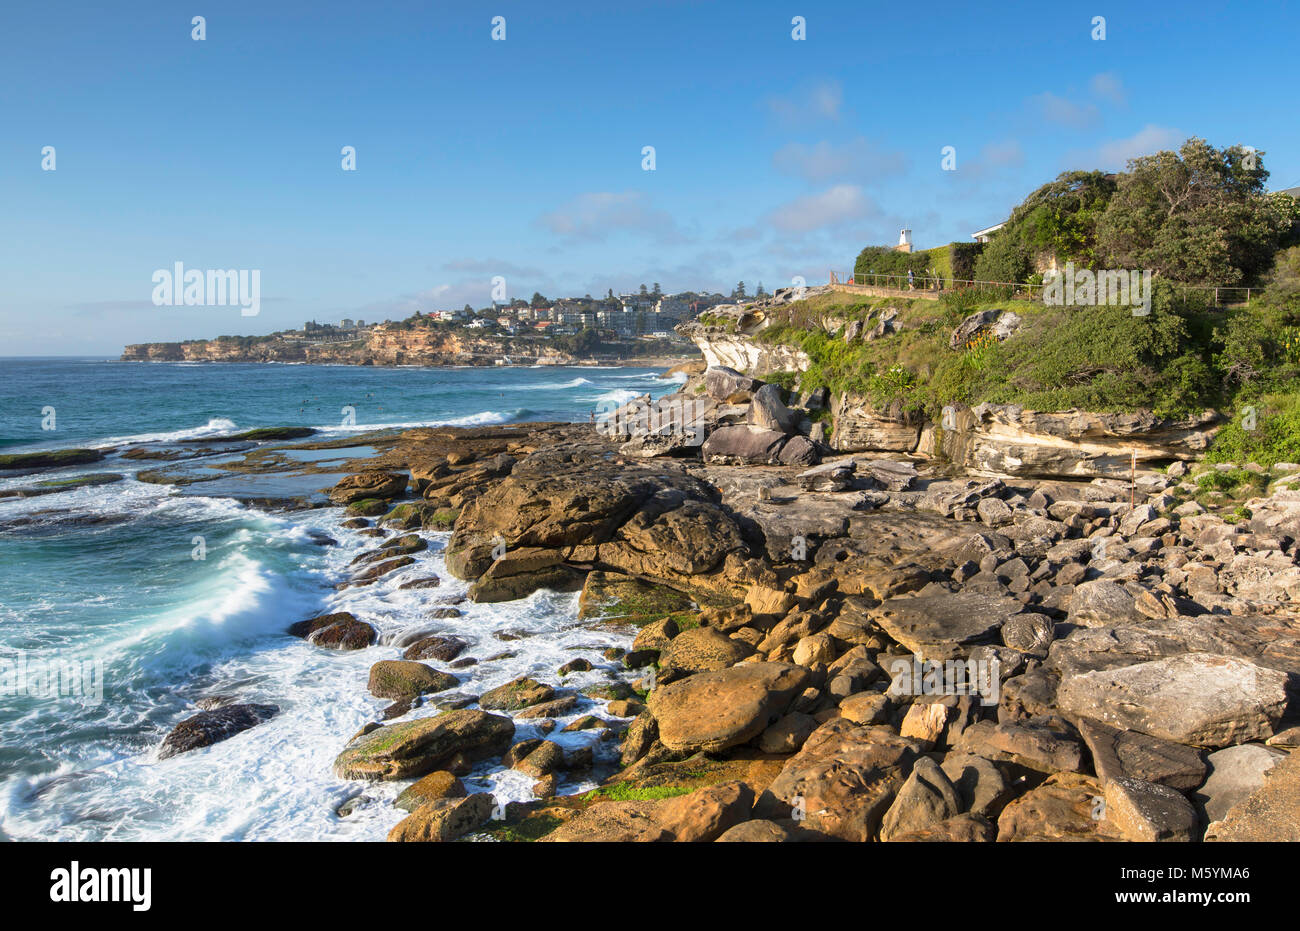 Coastline of Bondi to Bronte walk, Sydney, New South Wales, Australia - Stock Image